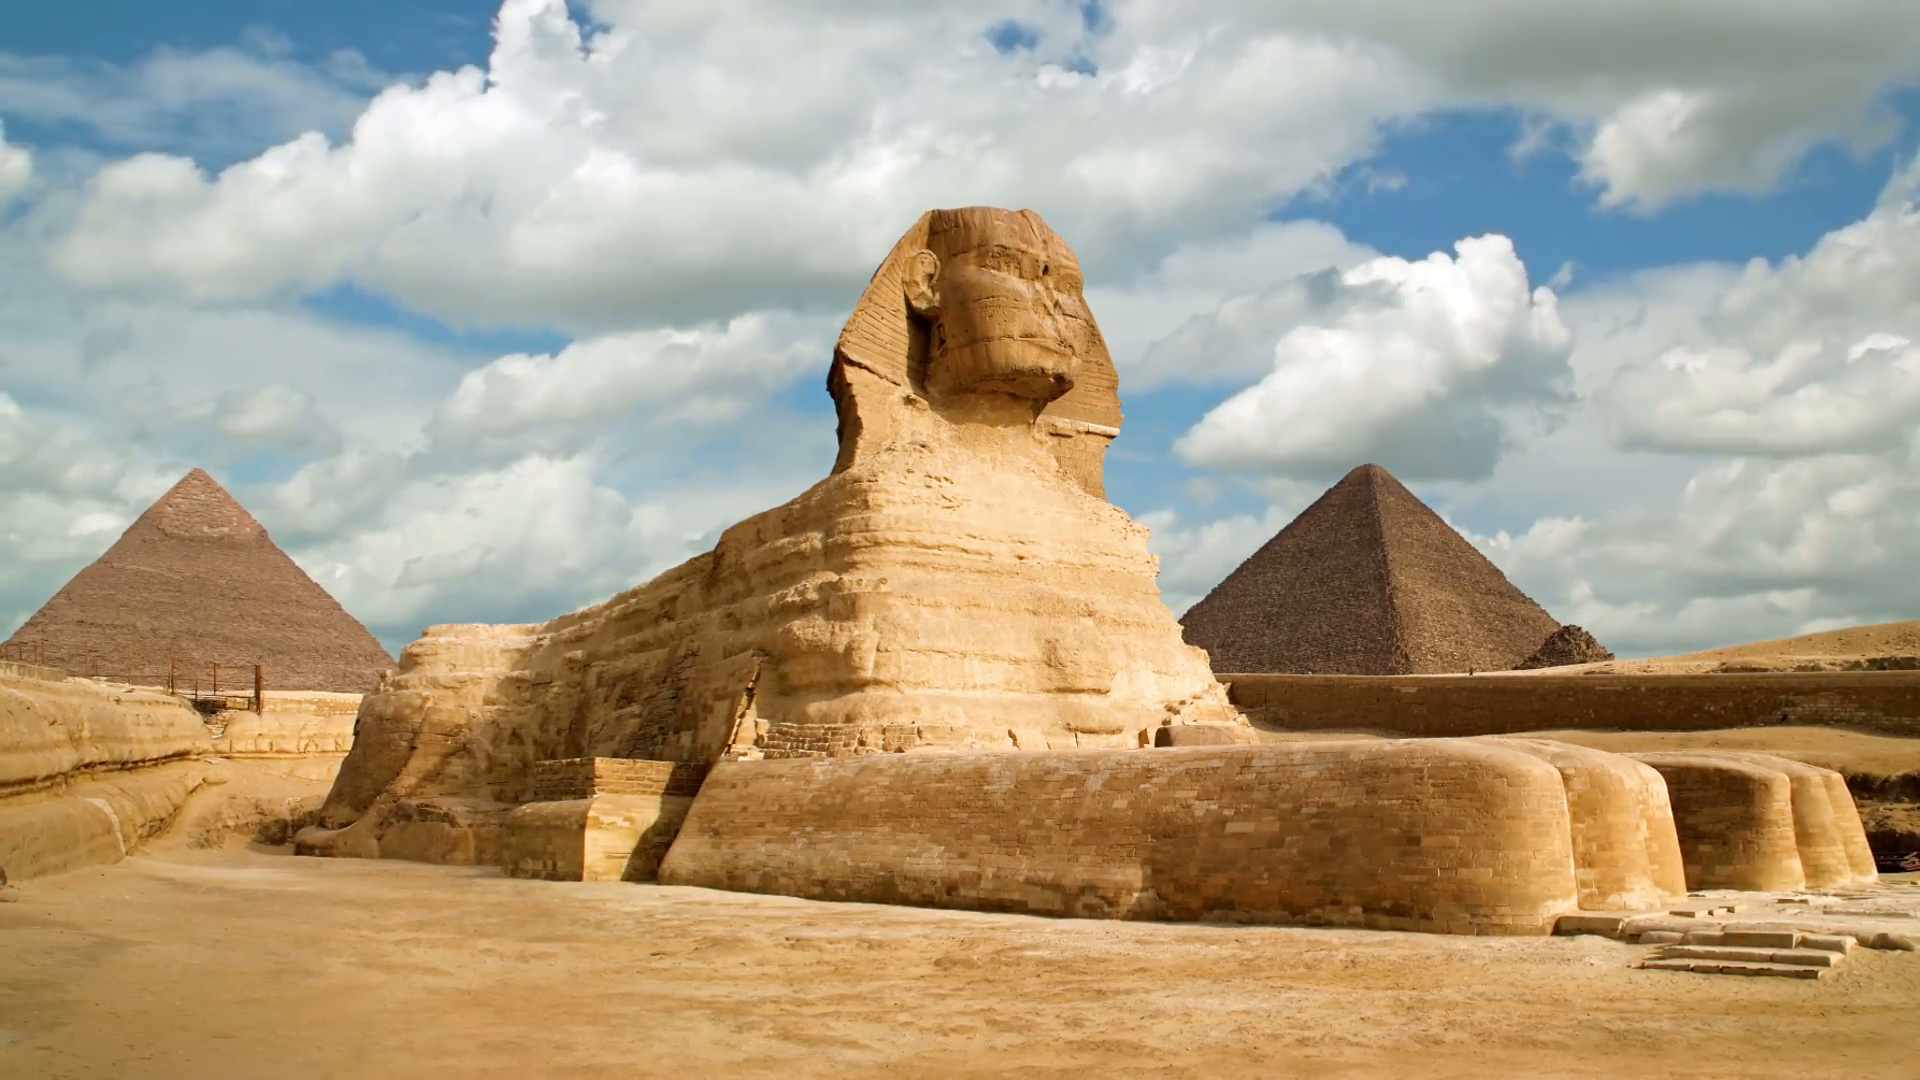 Cairo Package Tour Https Www Planegypttours Com Packages Egypt Classic Tours Cairo Tours Packages Cairo Package Egypt Tours Shore Excursions Egypt Travel